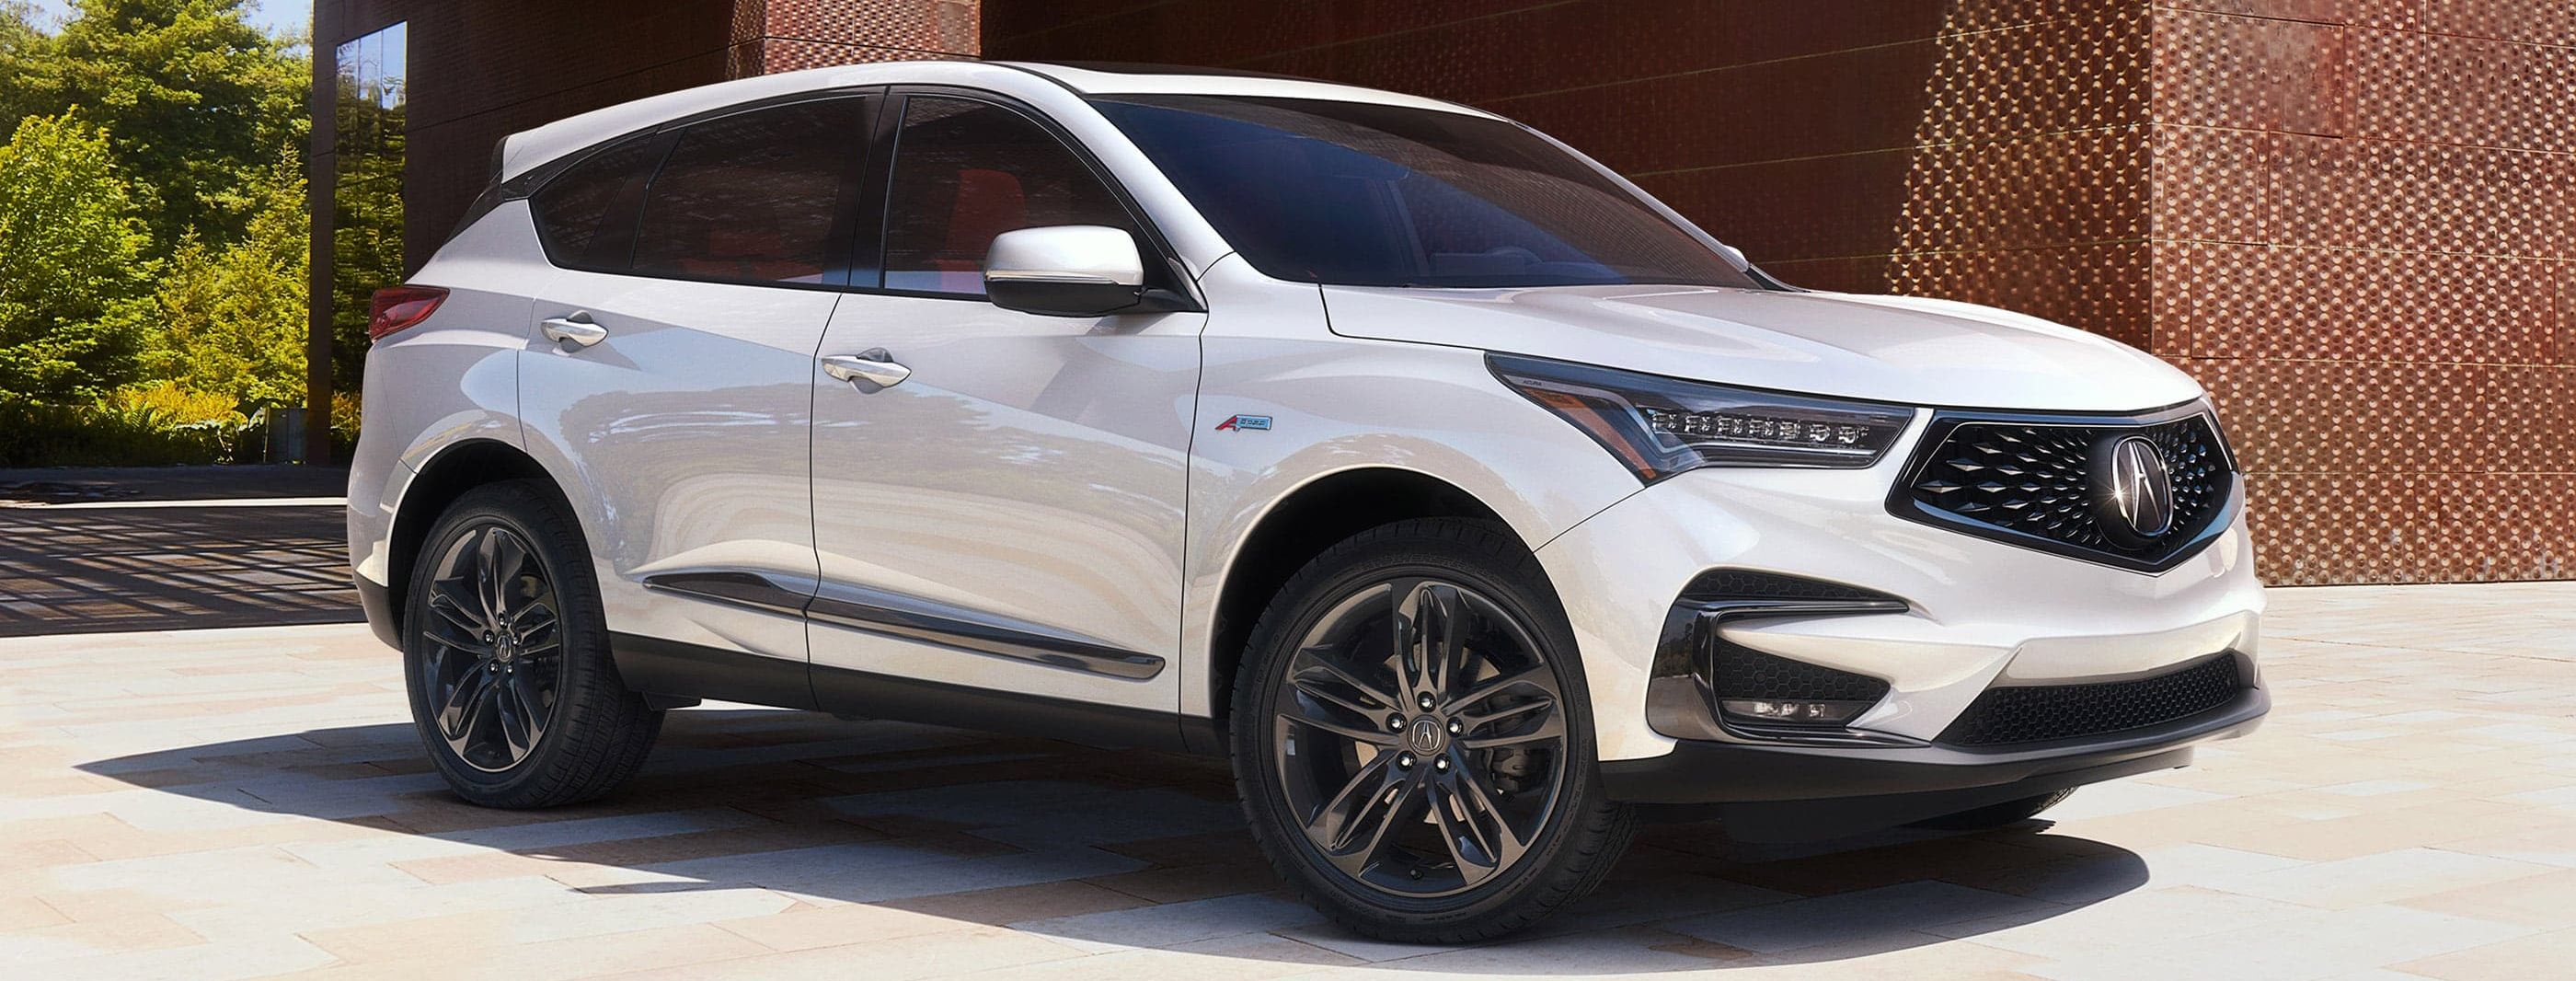 2020 Acura RDX for Sale near Smyrna, DE